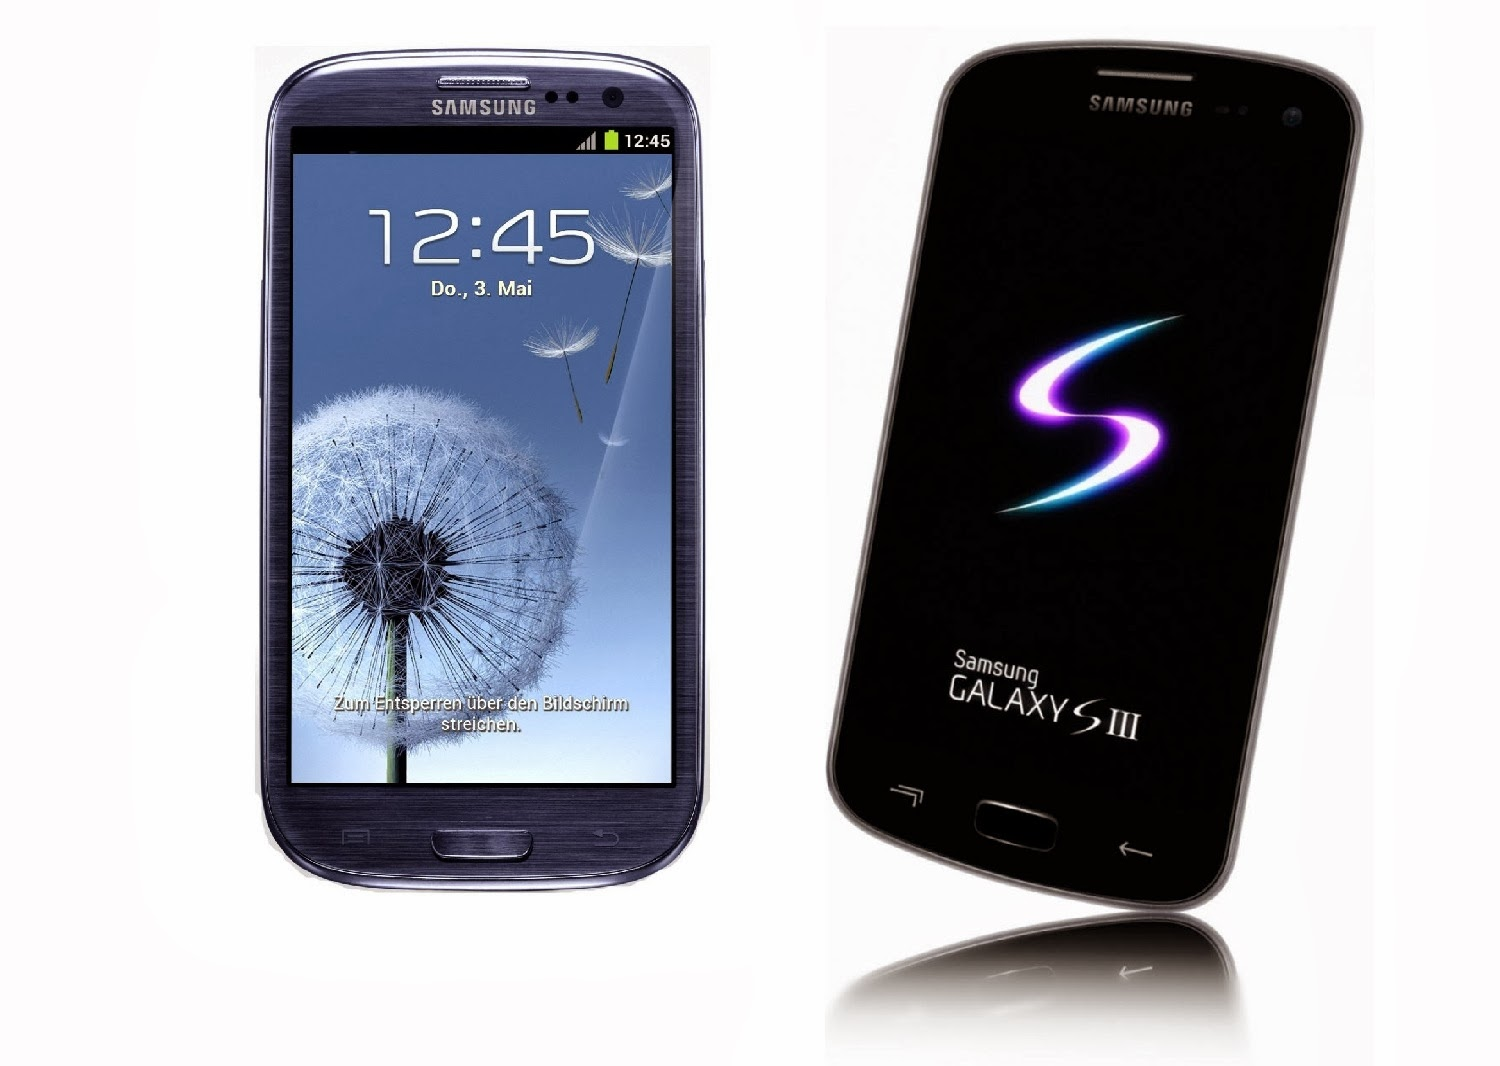 samsung galaxy s3 i9300 stock firmware download